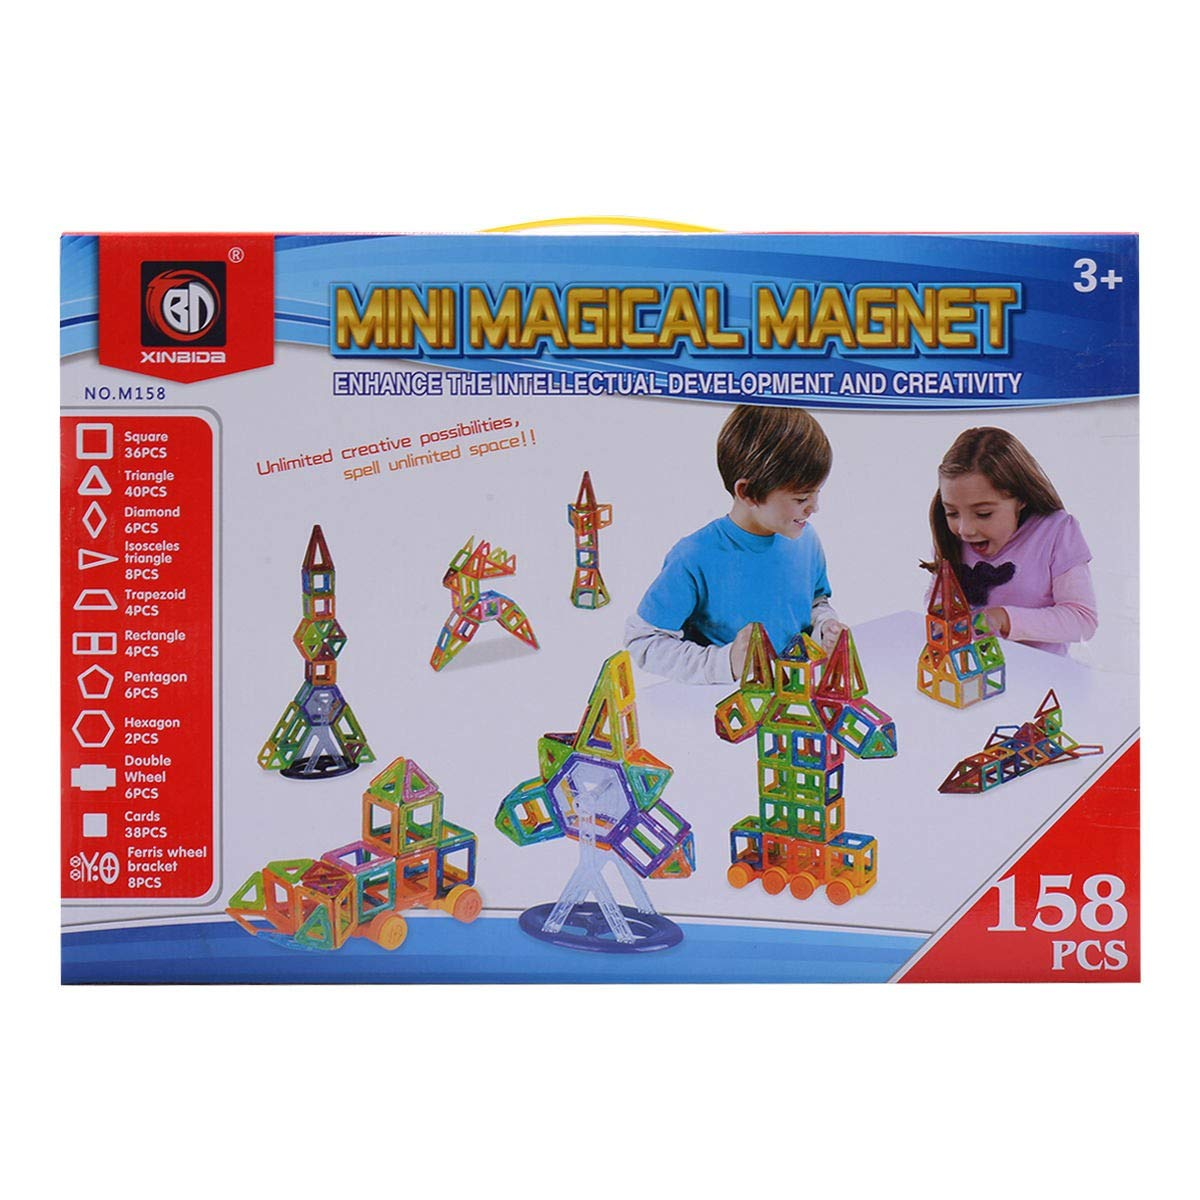 EnjoyShop 158 pcs Magical Magnetic Construction Building Blocks Smooth Interface and Good Abrasion Resistance for Durability by EnjoyShop (Image #6)